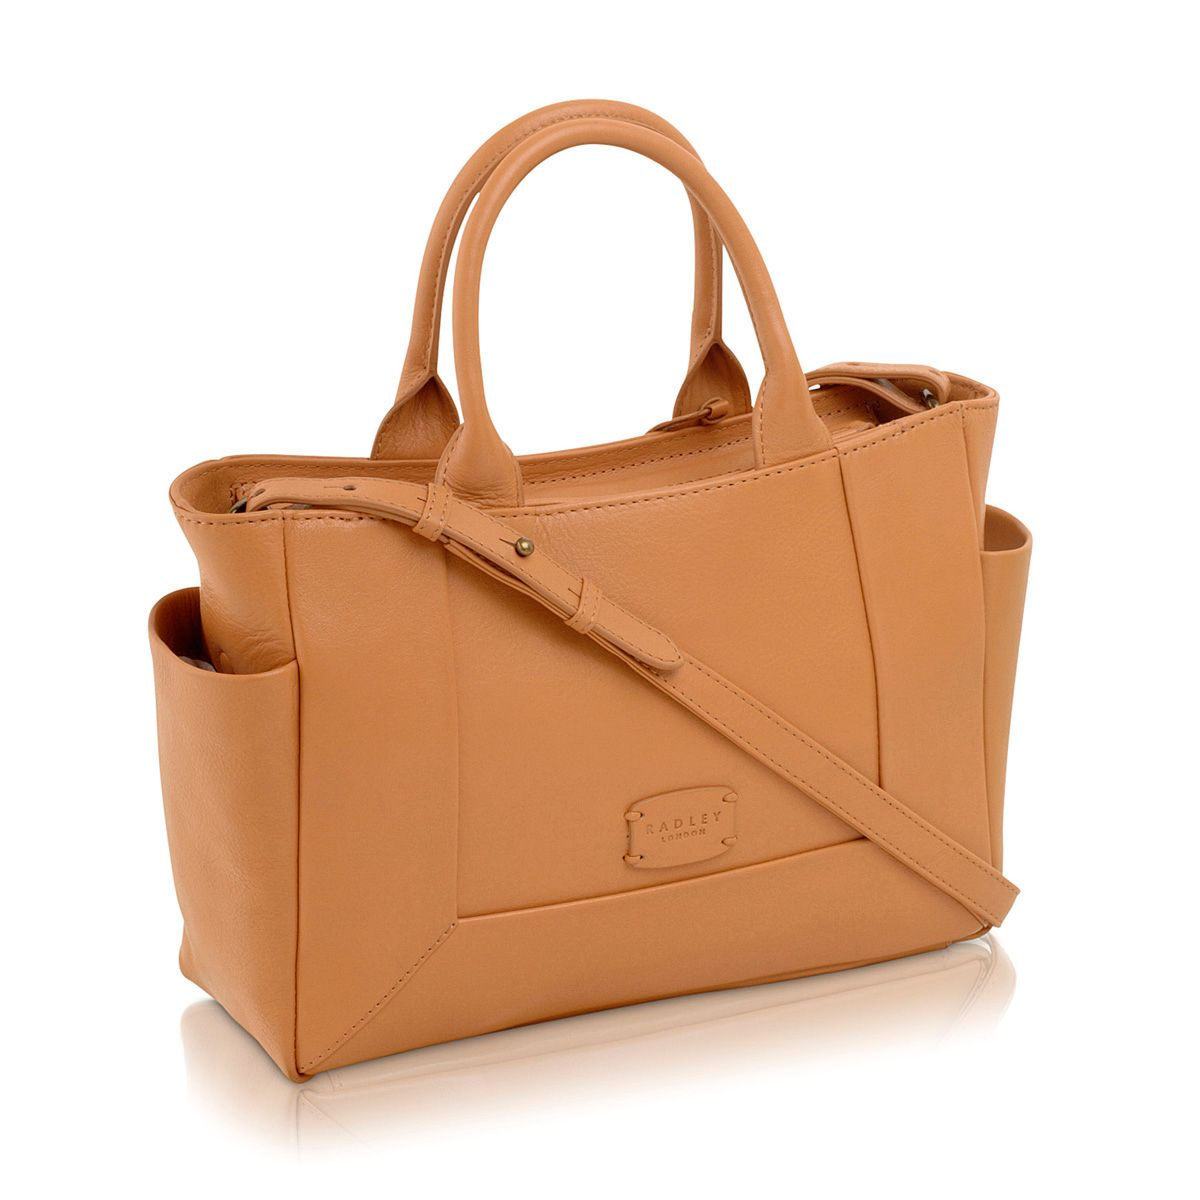 Border tan medium leather cross body tote bag